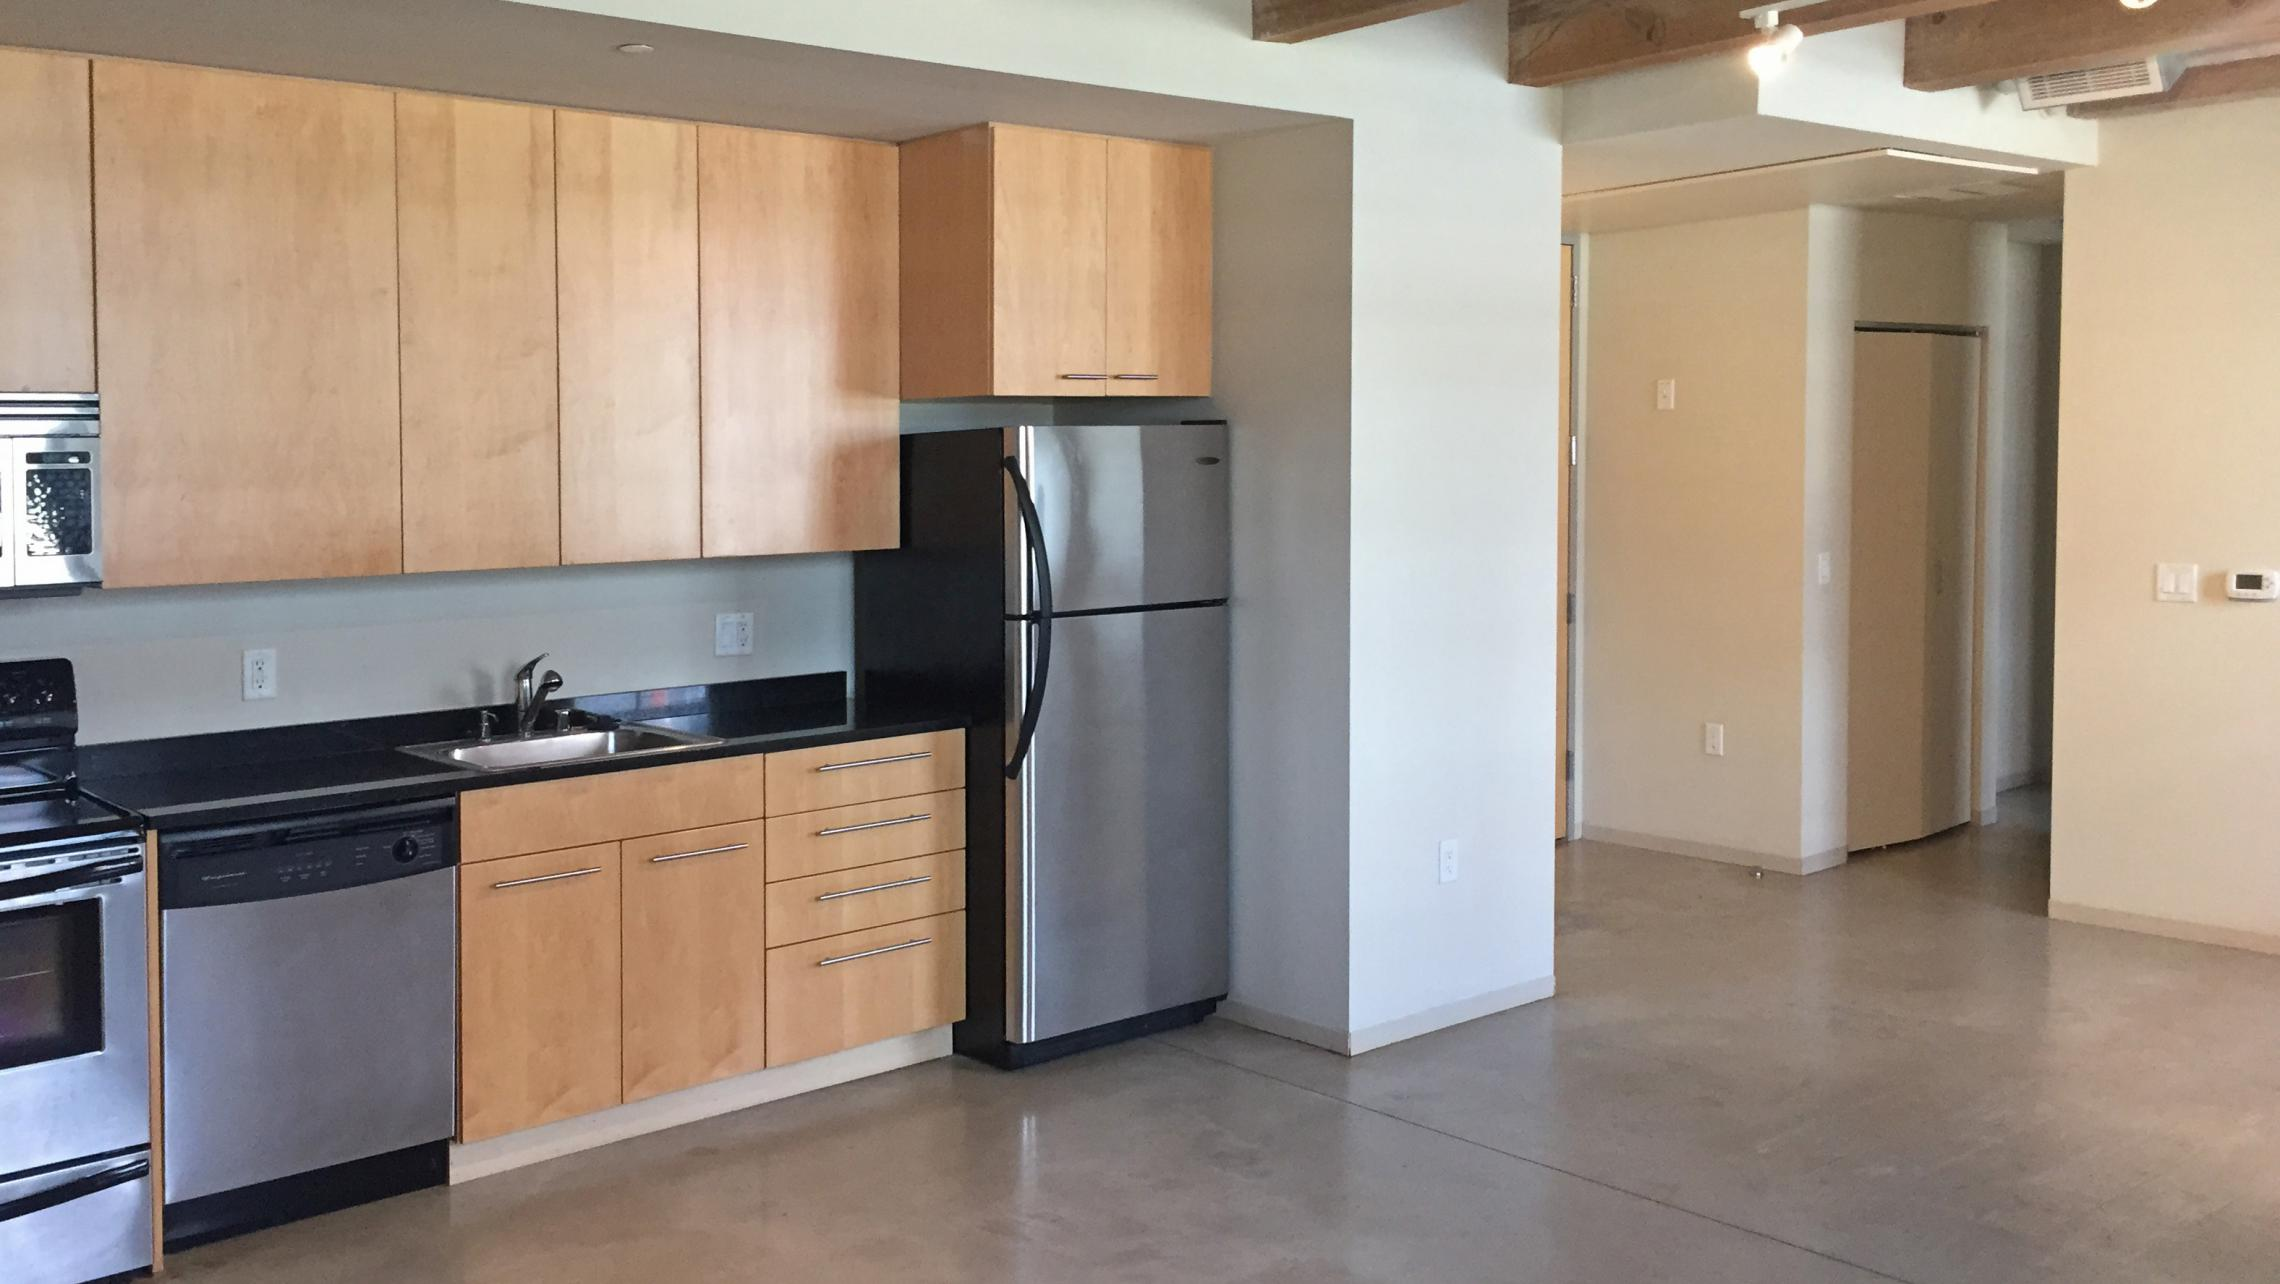 ULI Tobacco Lofts - E105 - Kitchen with Exposed Wood Beams